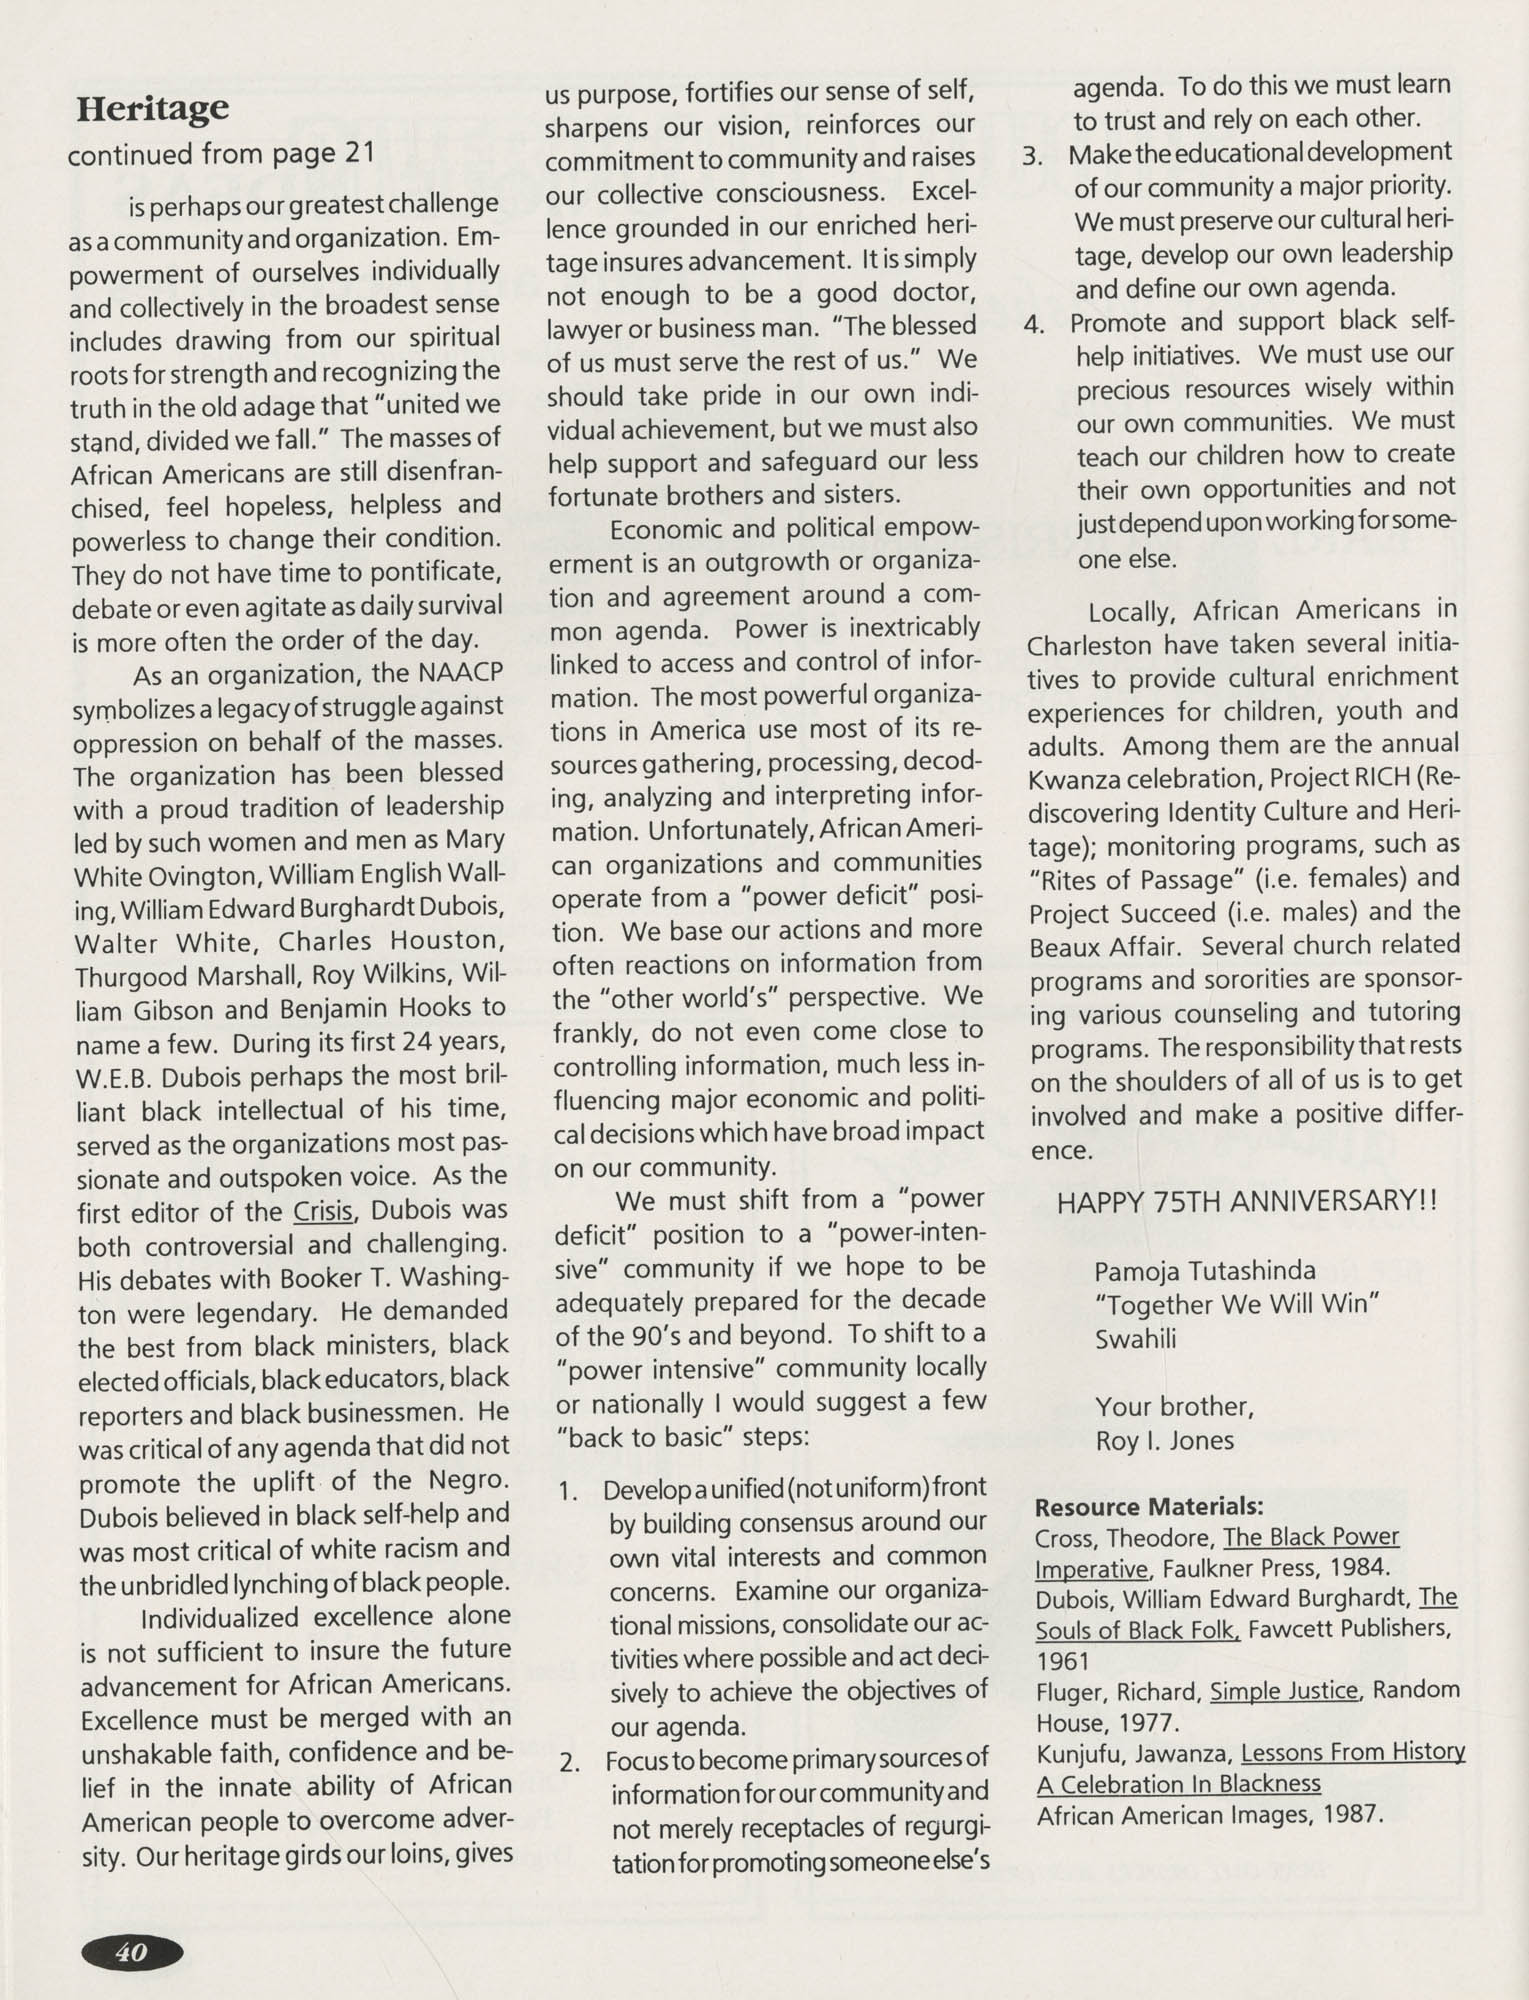 1991 Freedom Fund Magazine, Charleston Branch of the NAACP, Page 40